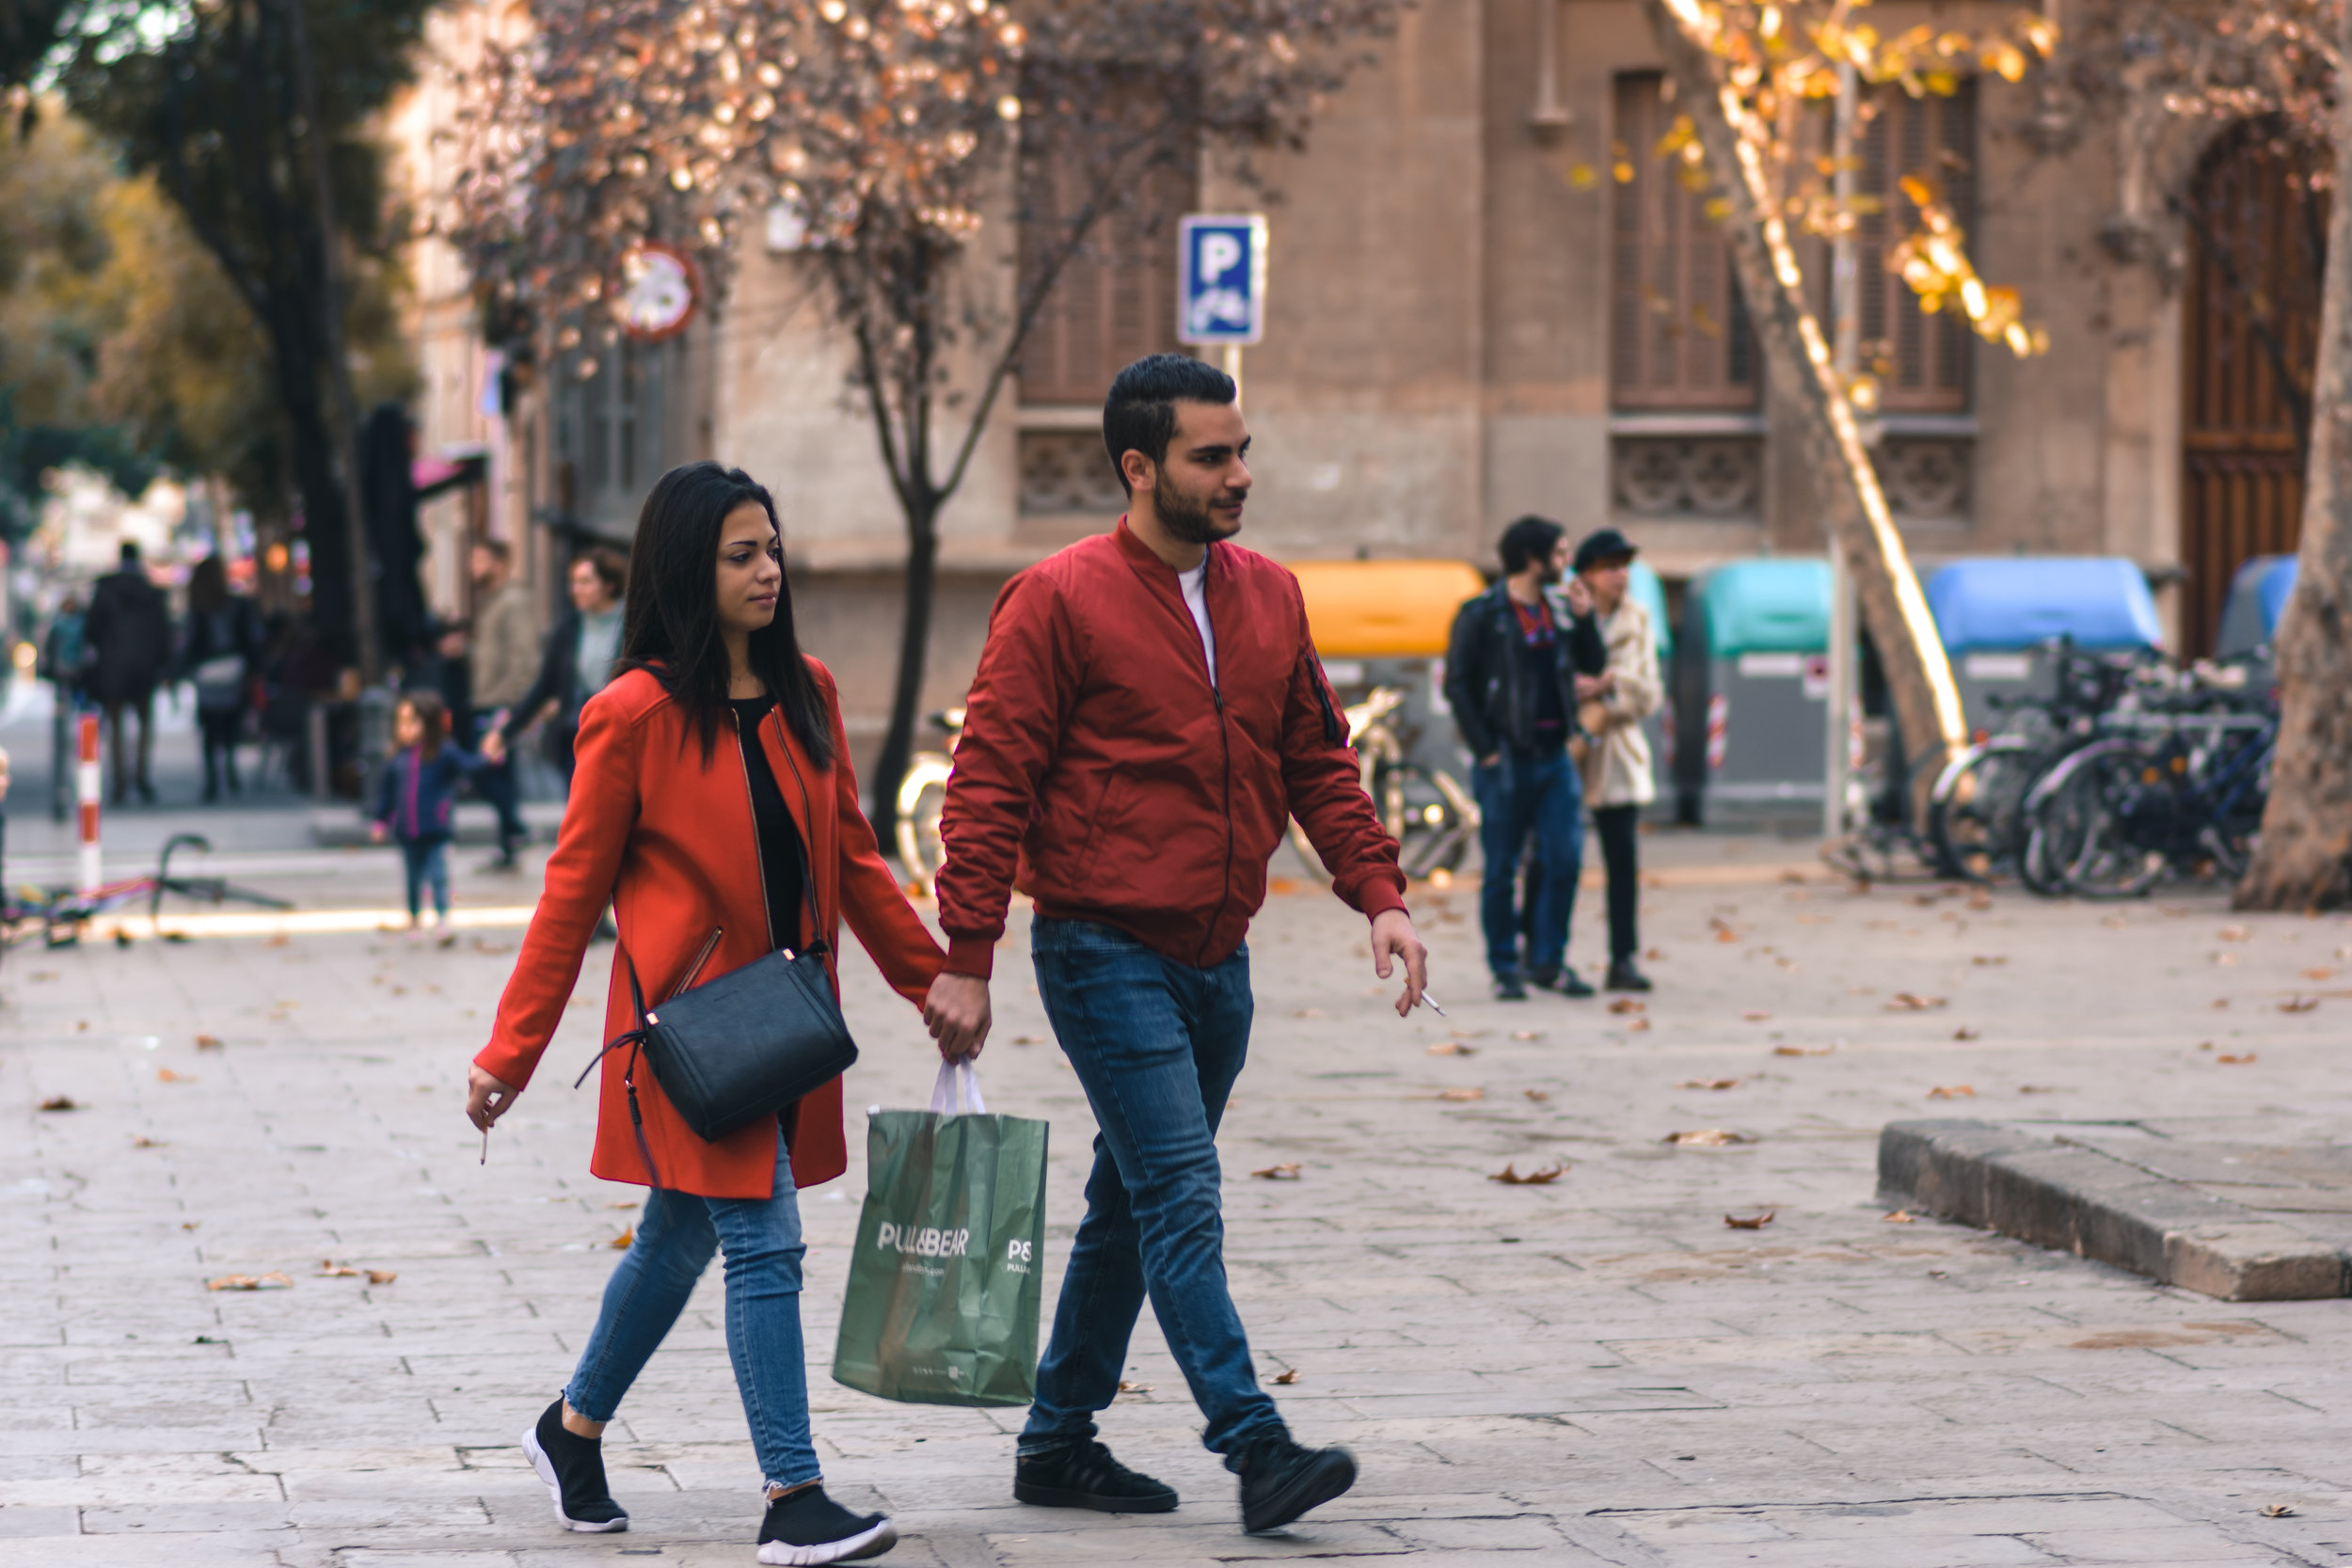 Daily Shopping , Barcelona, December 2018